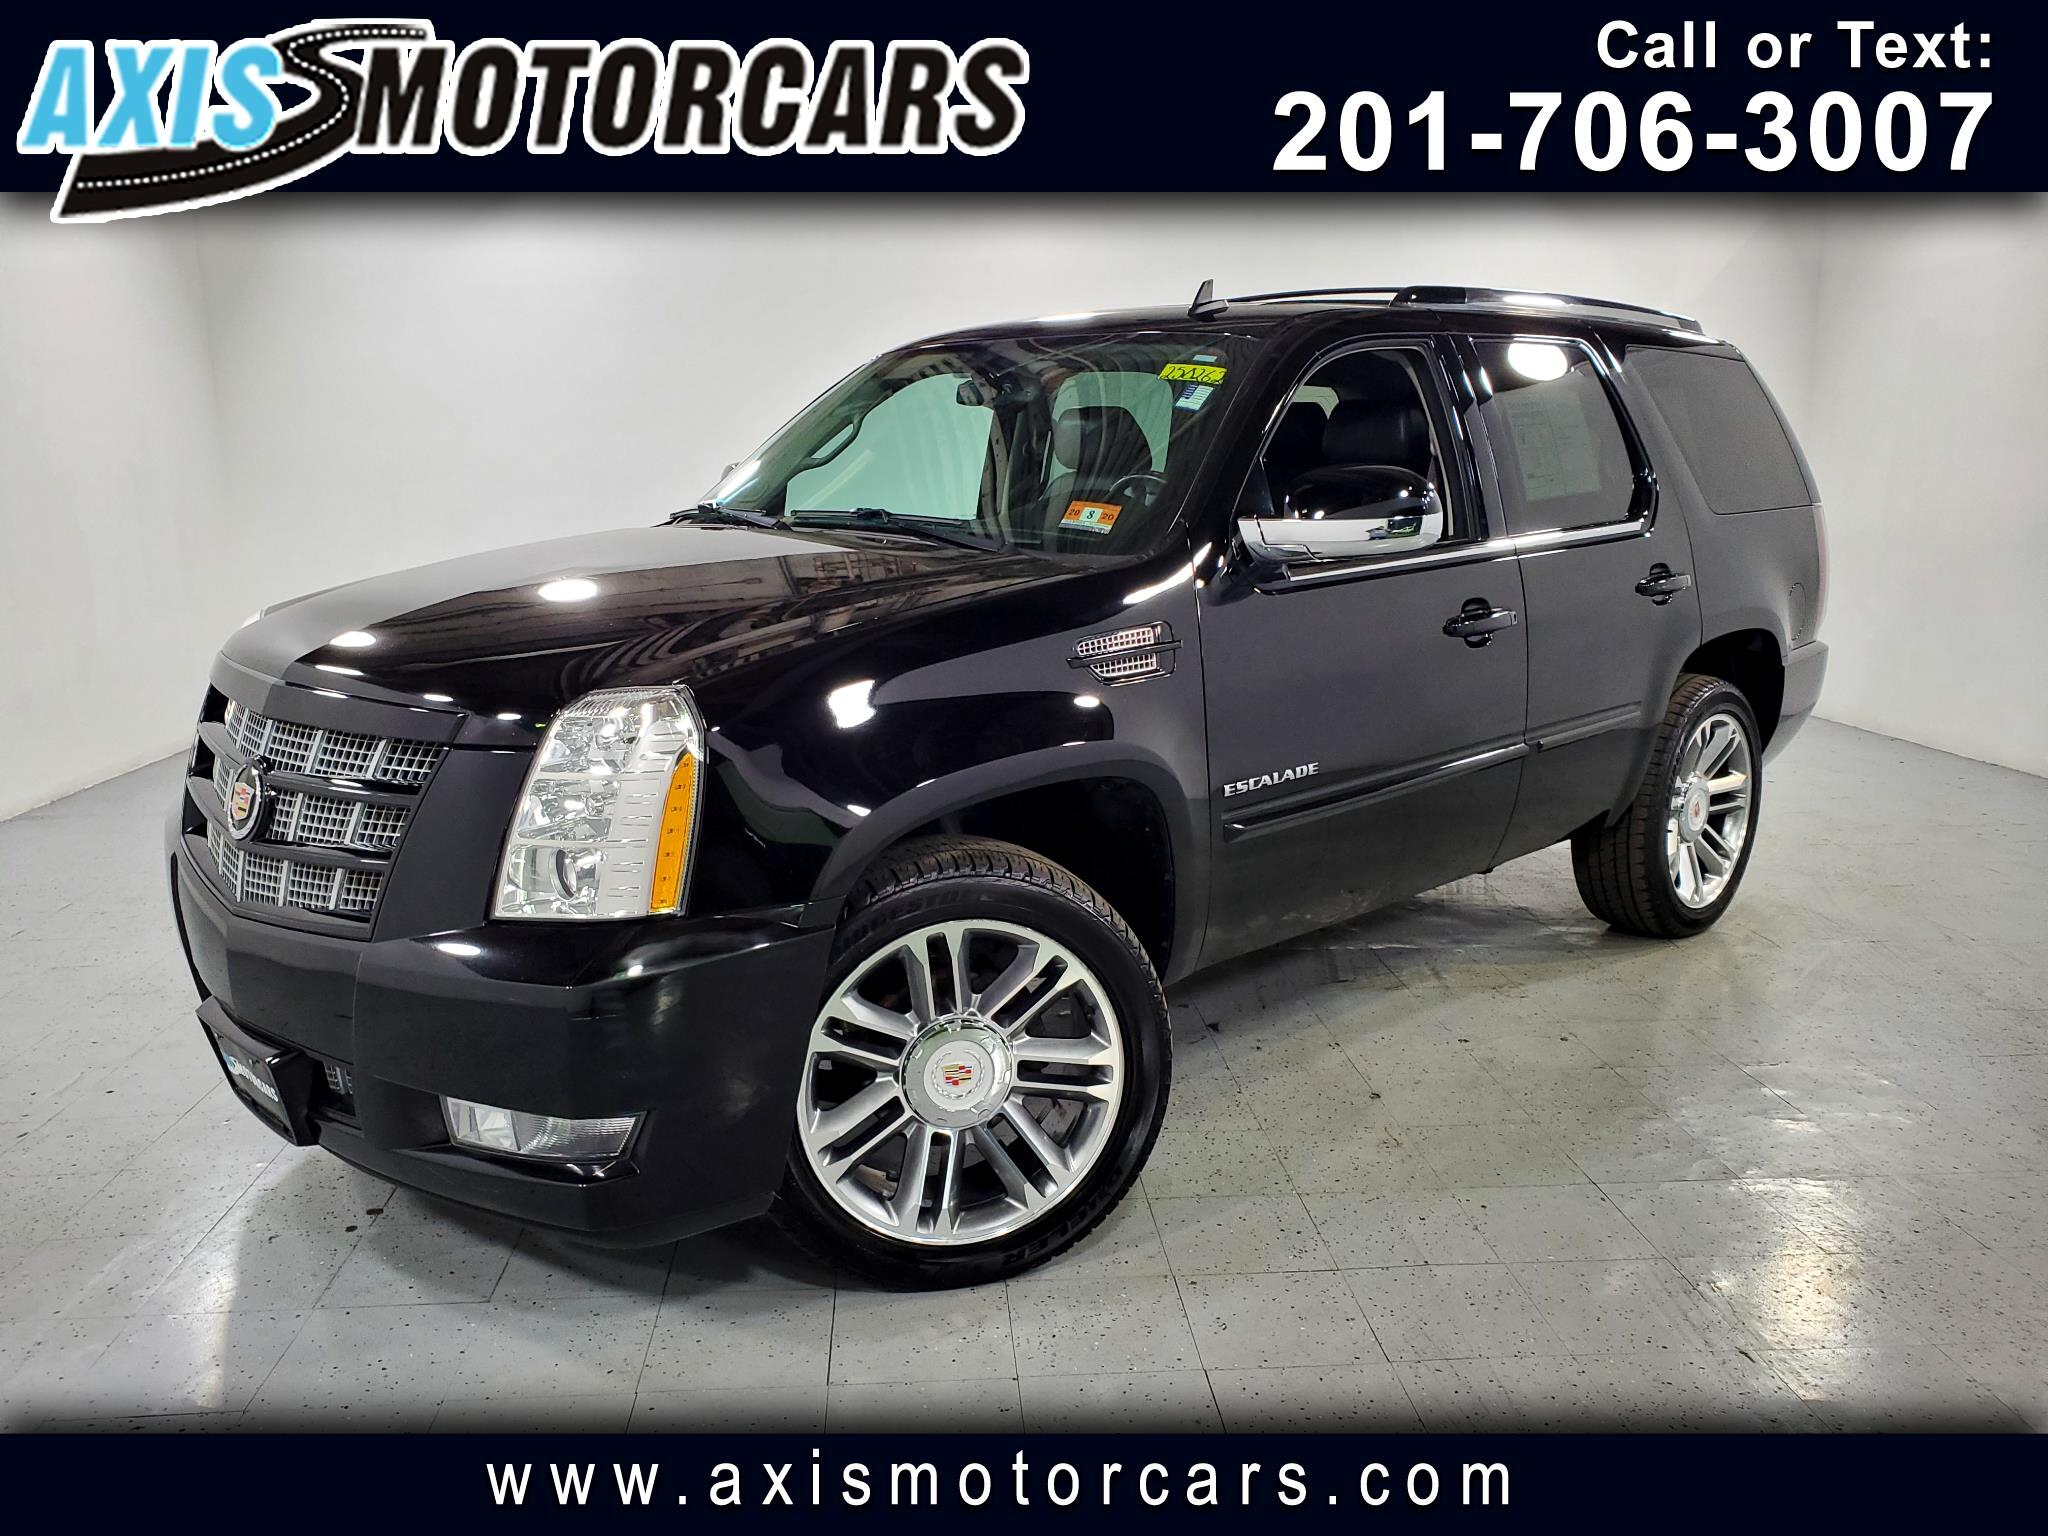 2013 Cadillac Escalade Premium w/Rear Entertainment Bose Sound System